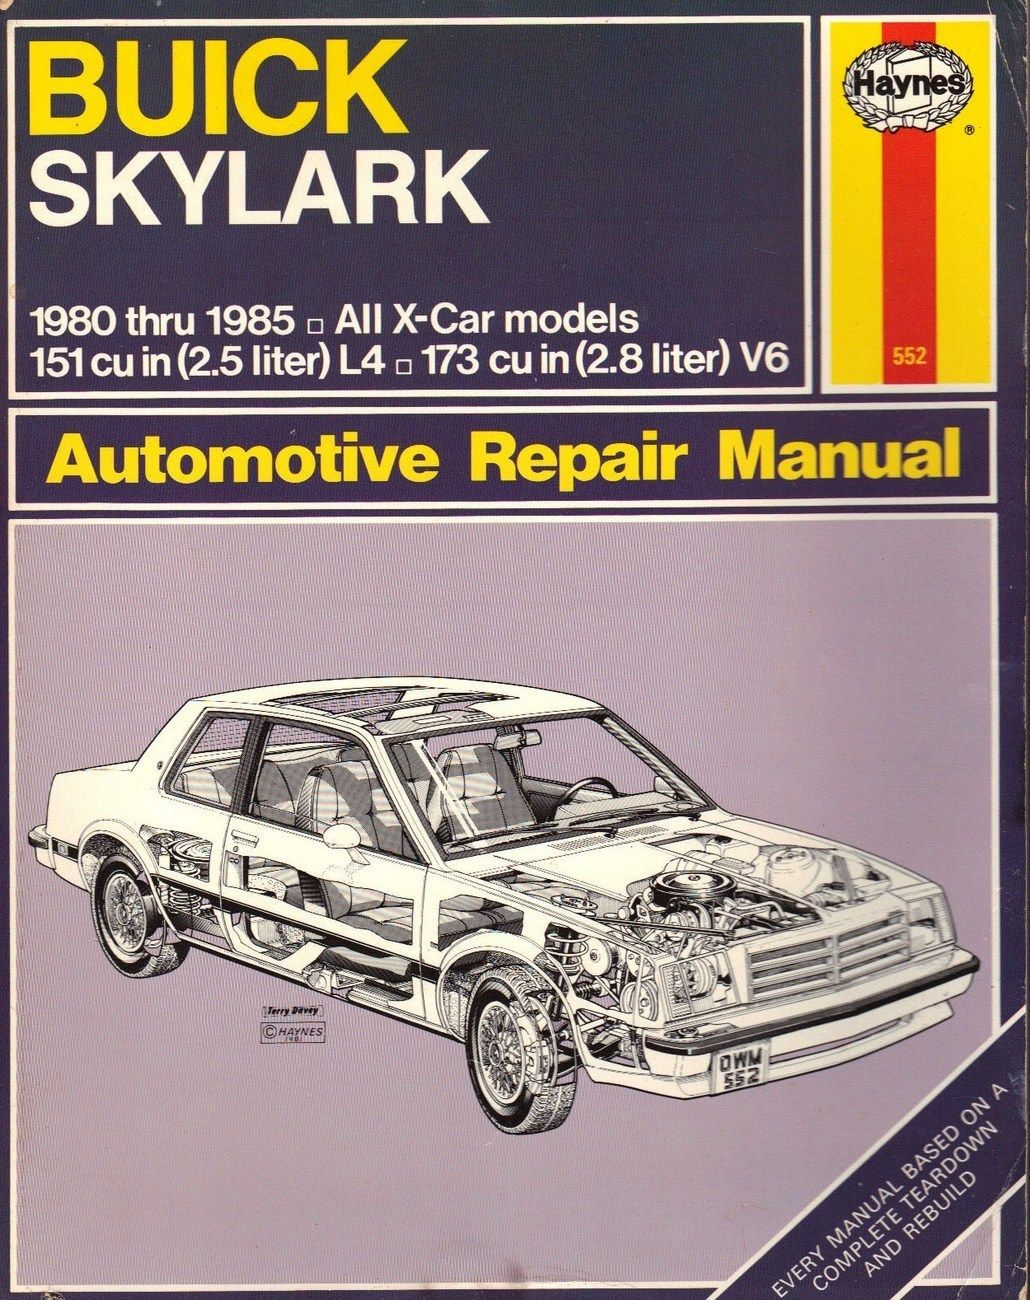 Buick Skylark X Cars 1980 to 1985 Haynes Automotive Repair Manual. Shop  manual for these models: Buick Skylark, Limited and Sport with 2.5 liter  (151 cubic ...